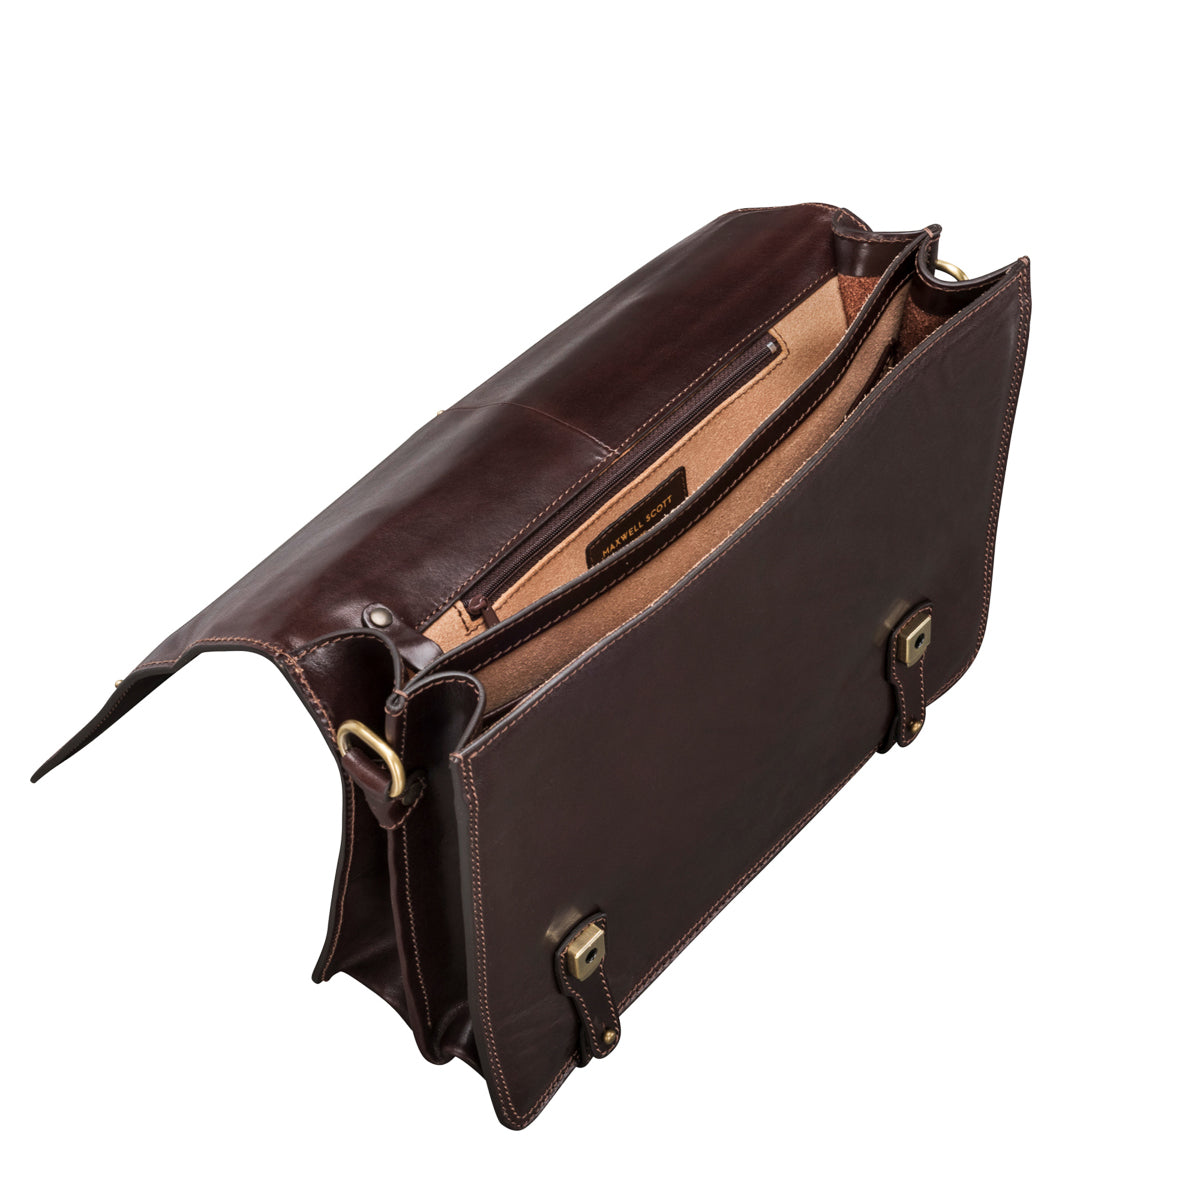 Image 5 of the 'Battista' Brown Veg-Tanned Leather Satchel Briefcase